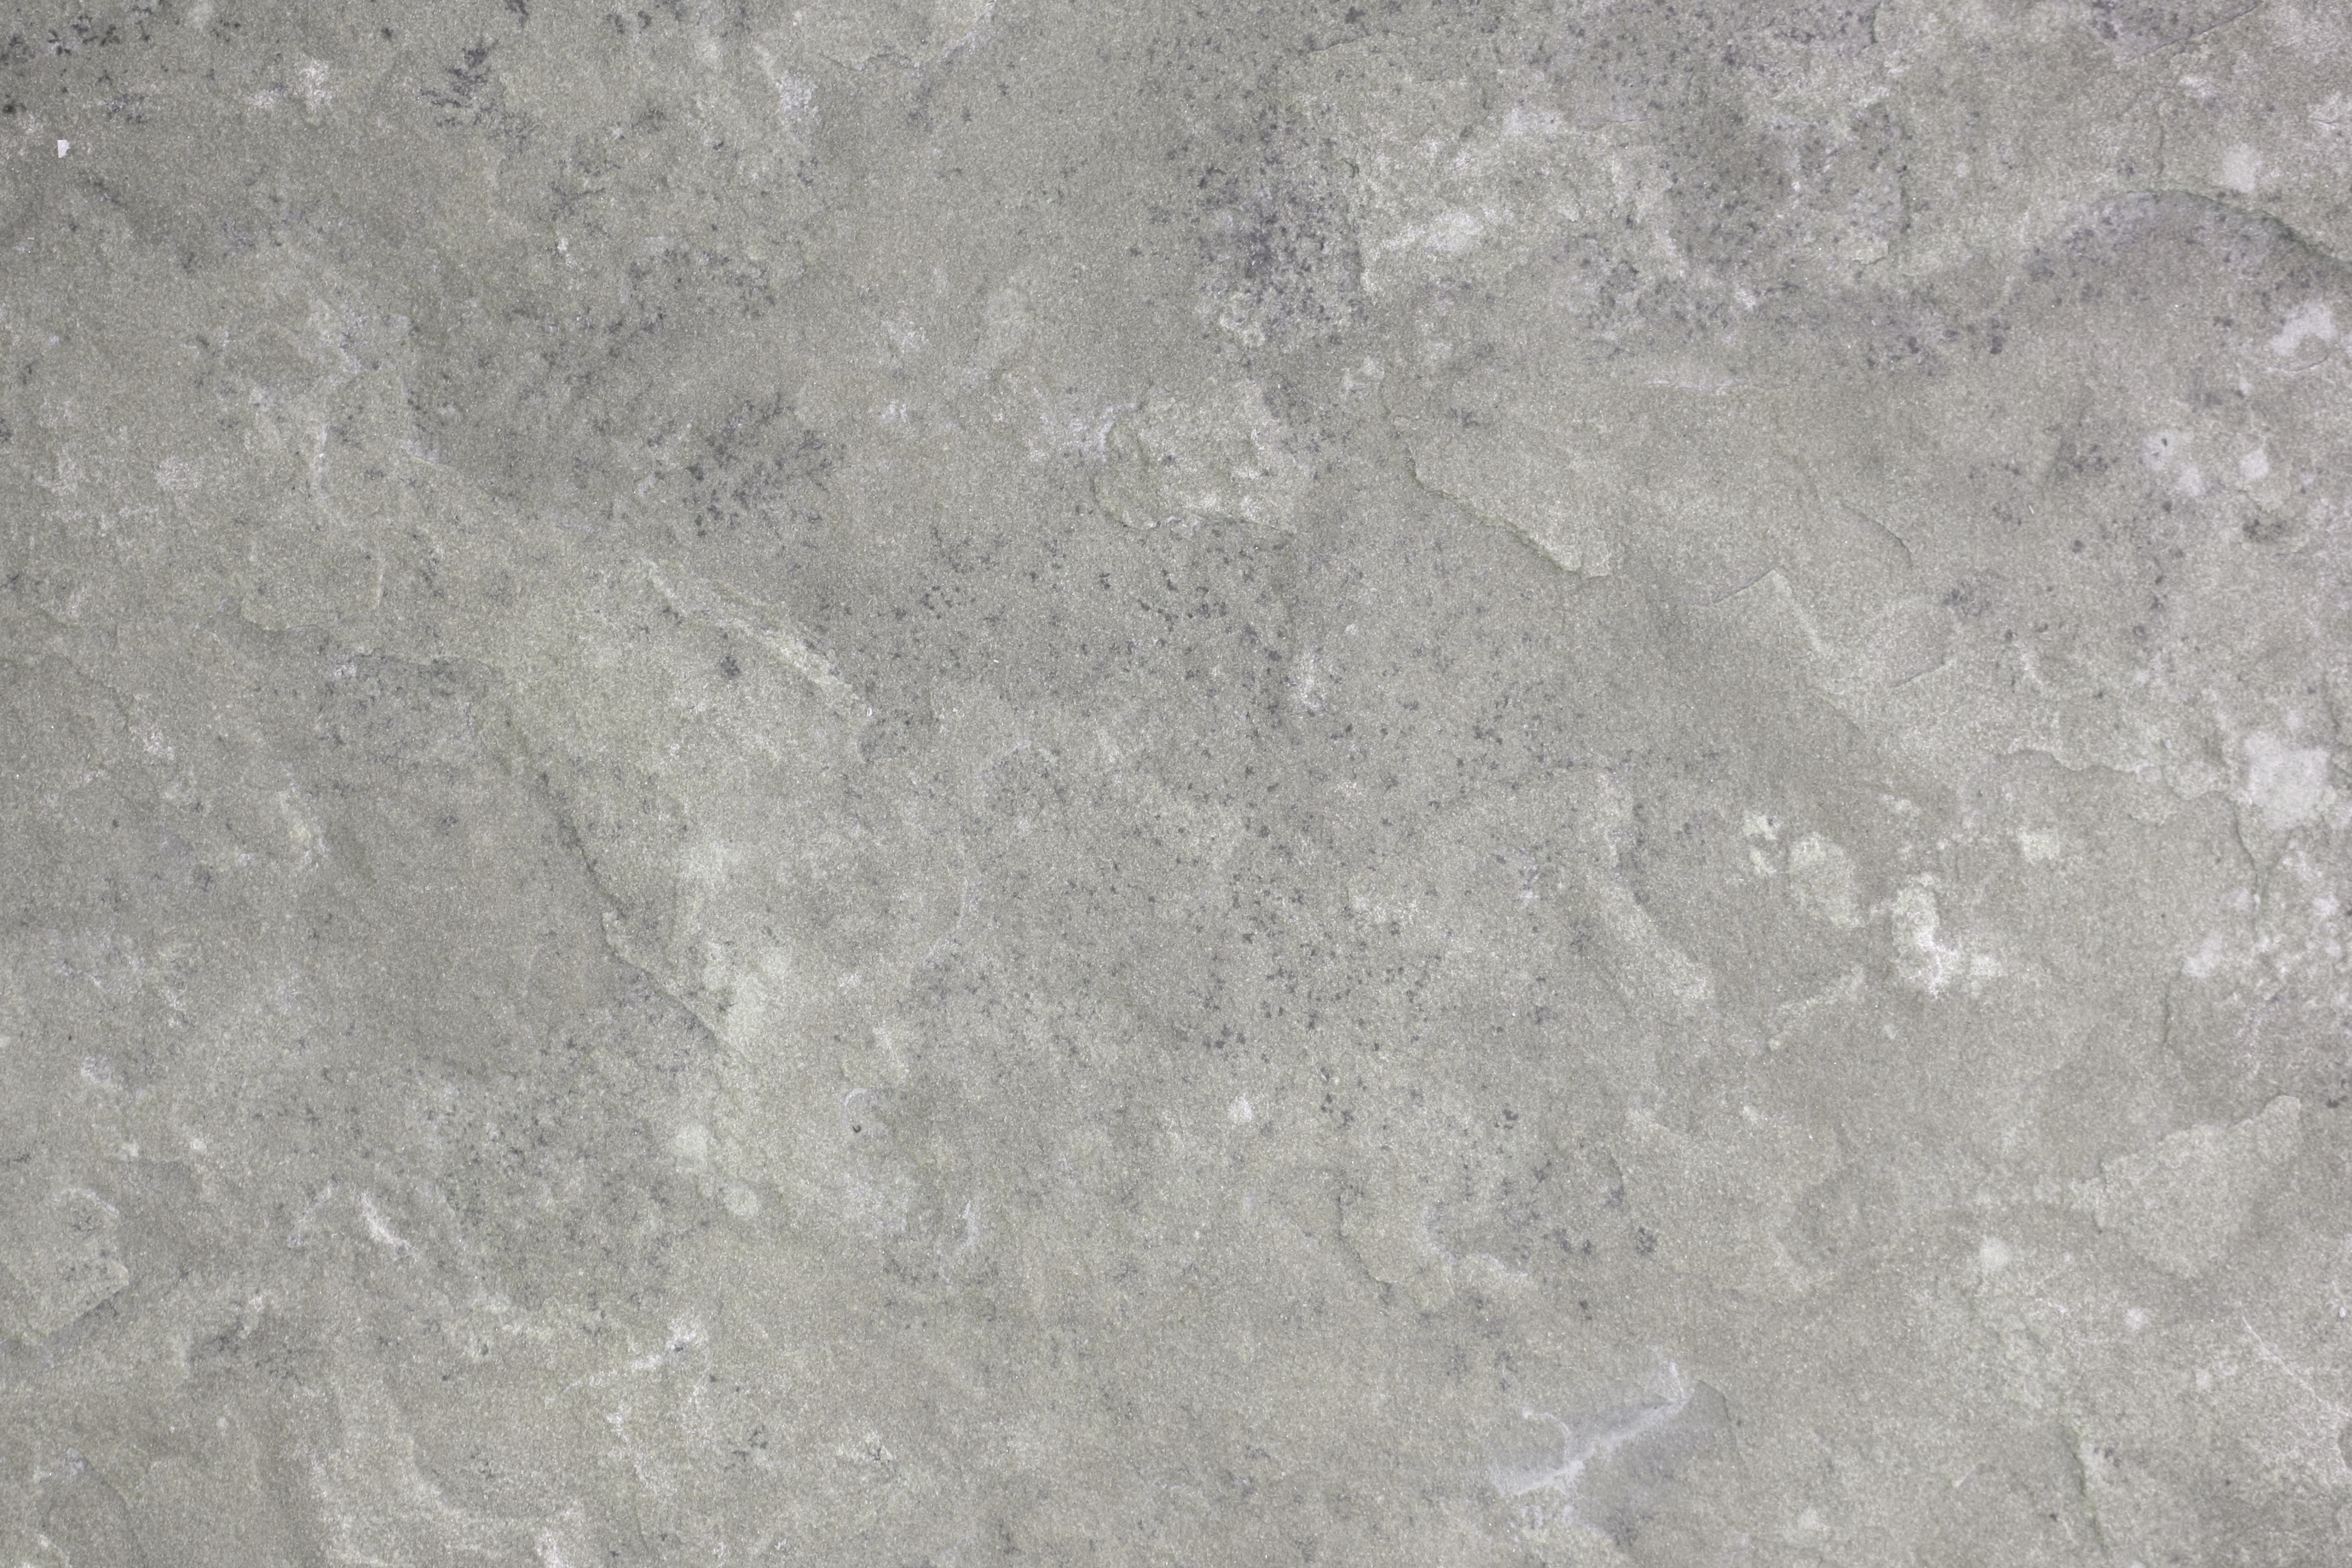 Gray Flagstone Texture Picture Free Photograph Photos